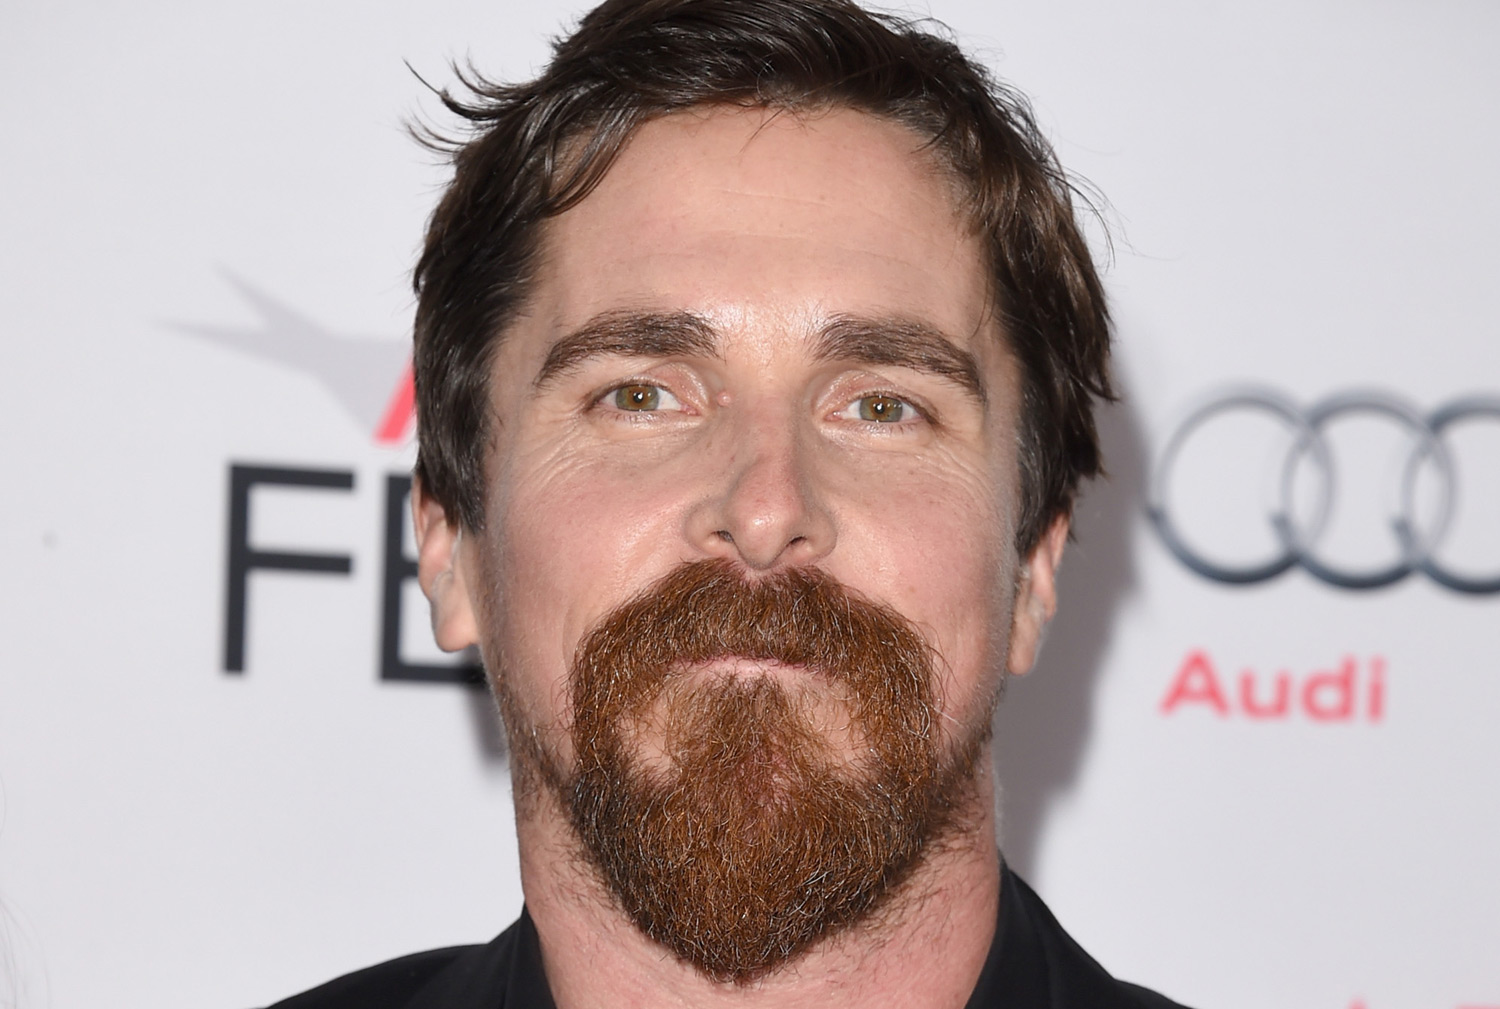 Christian Bale's 17th Wedding Anniversary is Coming Up Soon ...